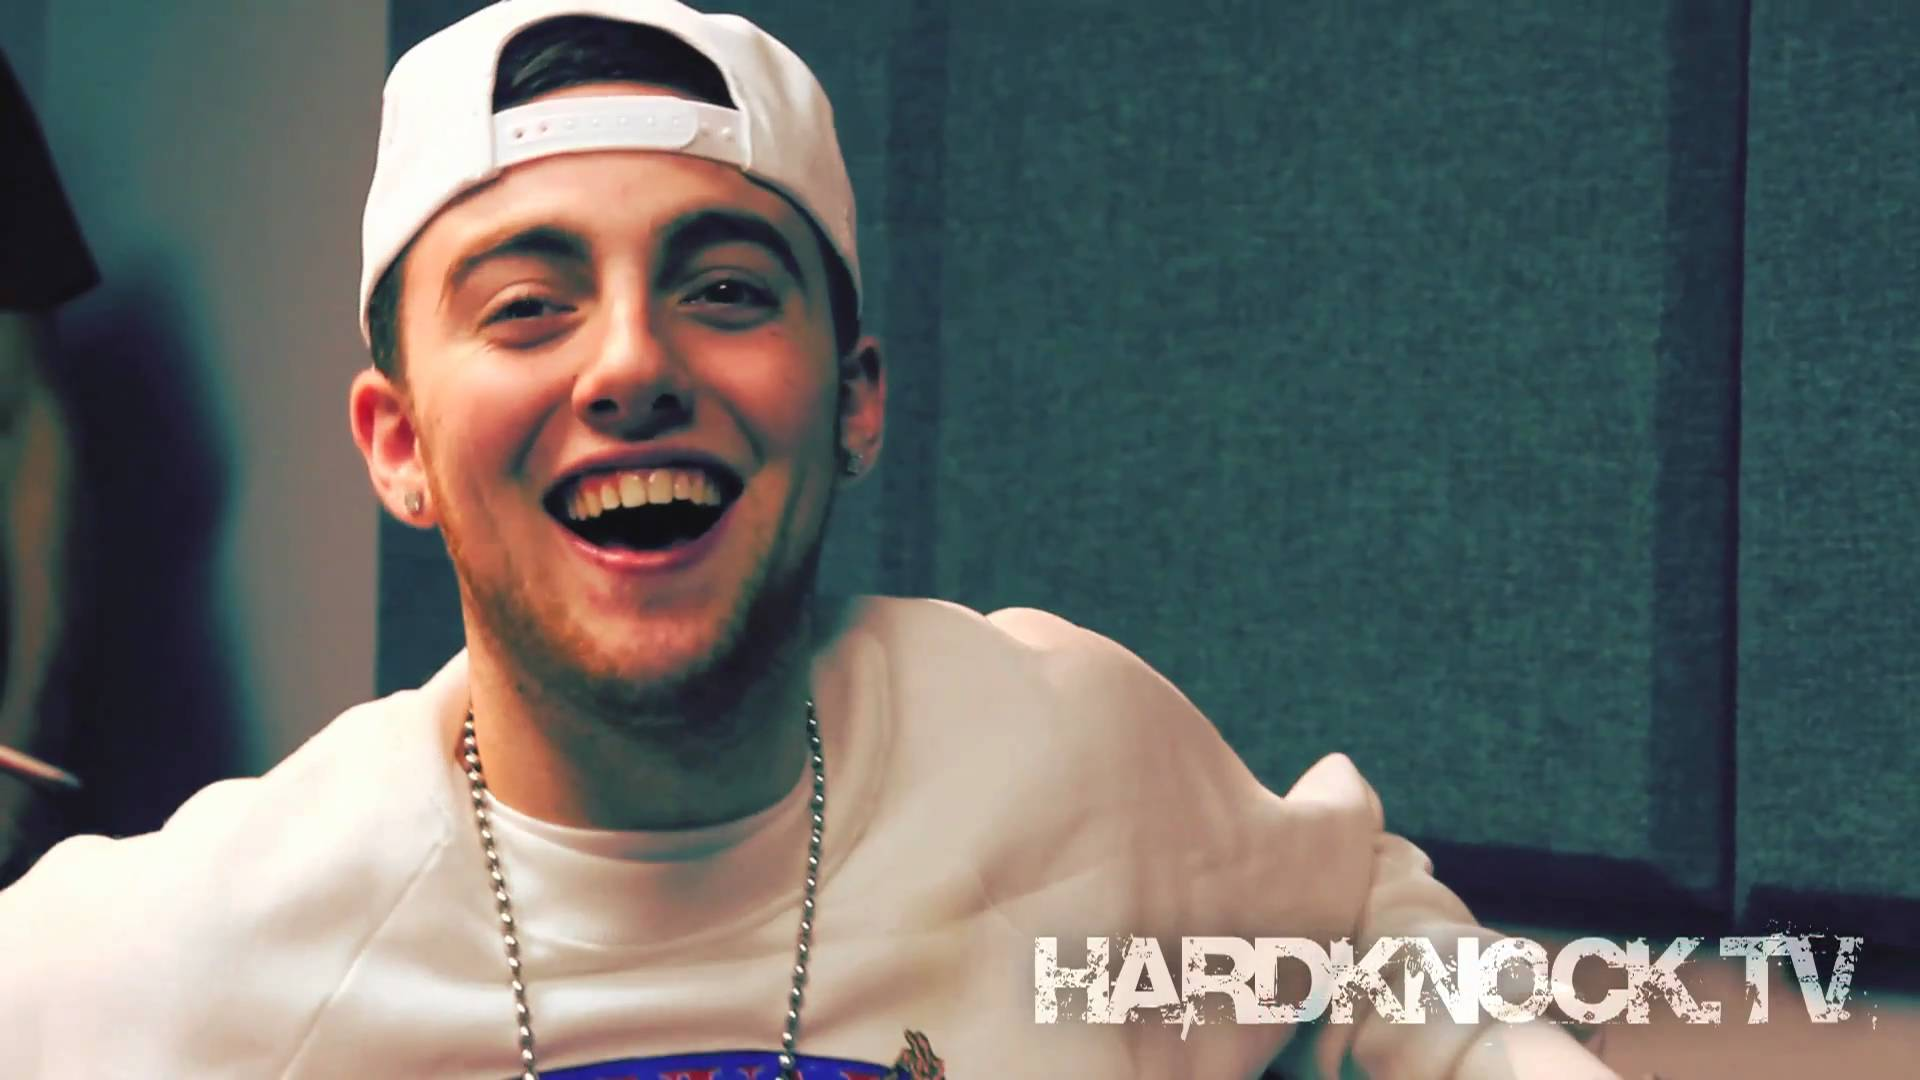 Mac Miller talks Wiz Khalifa, Pharrell, Waka Flocka, Donald Trump, Haters interview by Nick Huff Barili